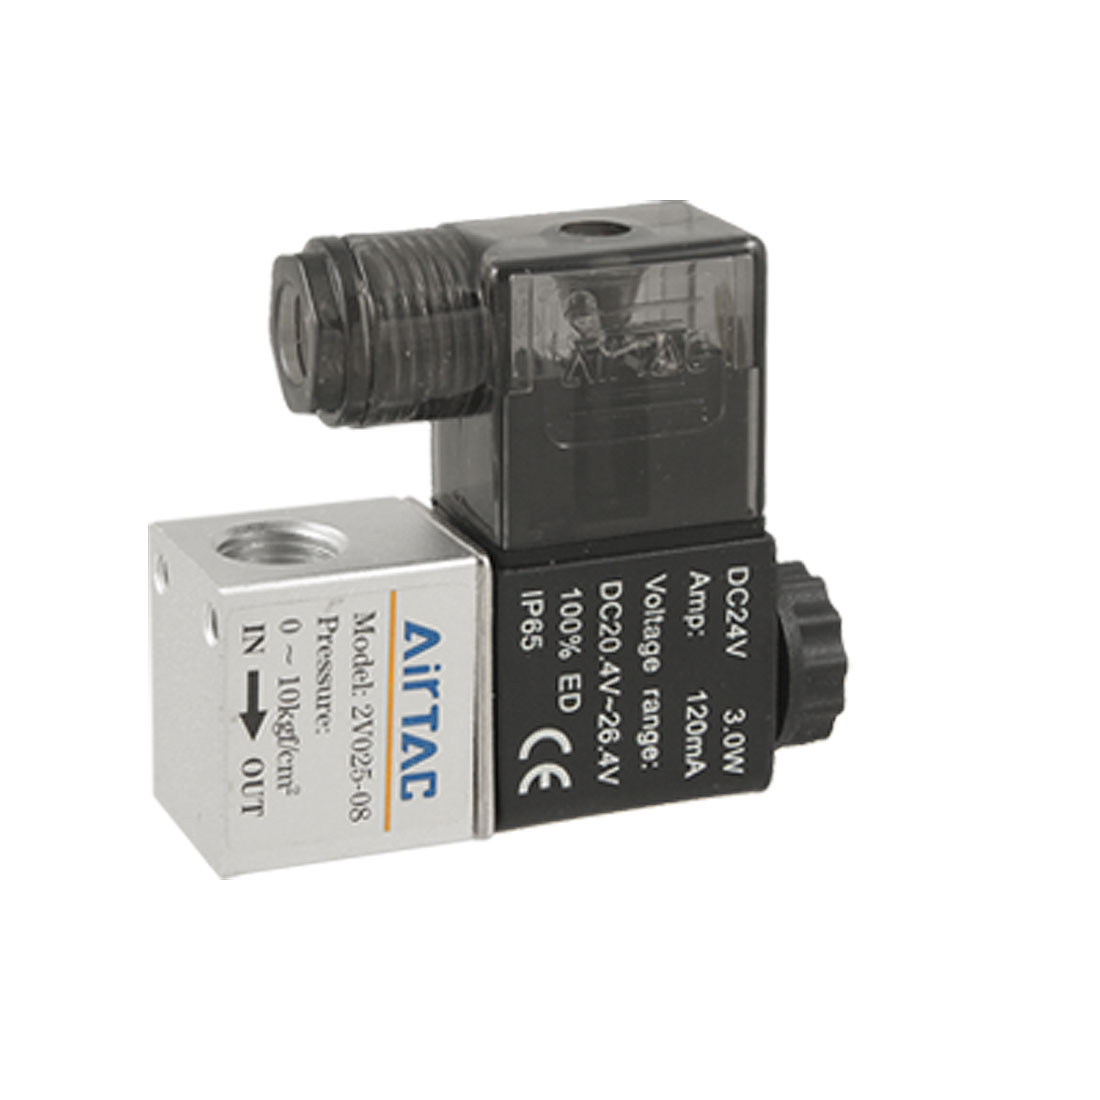 2V025-08 DC 24V 120mA 2 Position 2 Way Solenoid Valve